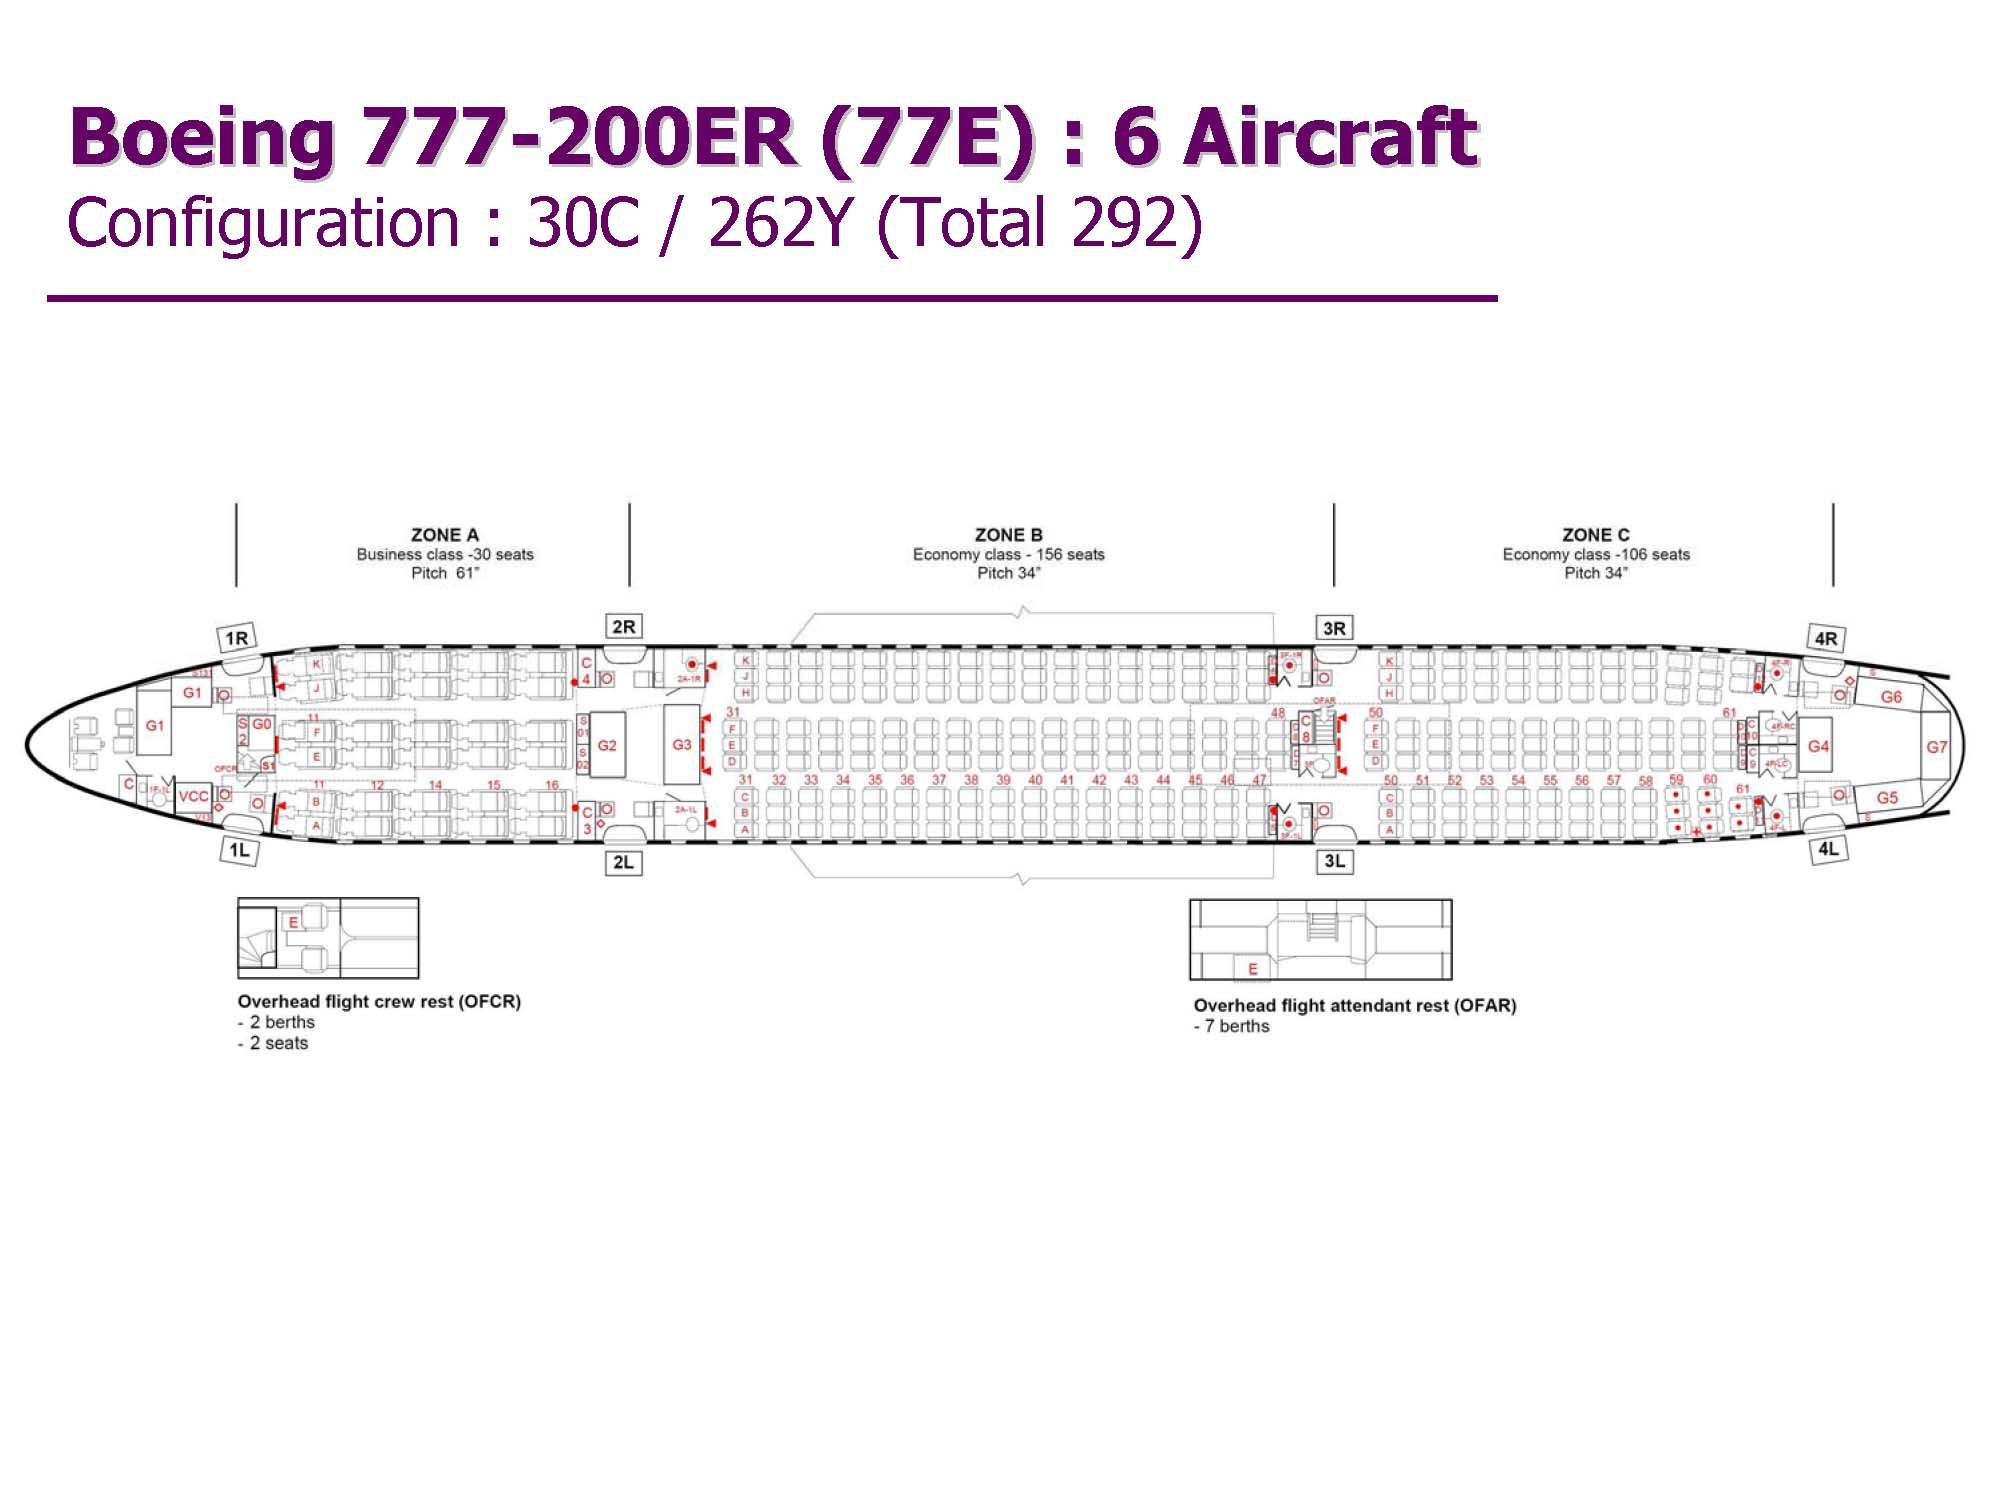 Thai Airways B777-200ER Sitzplan